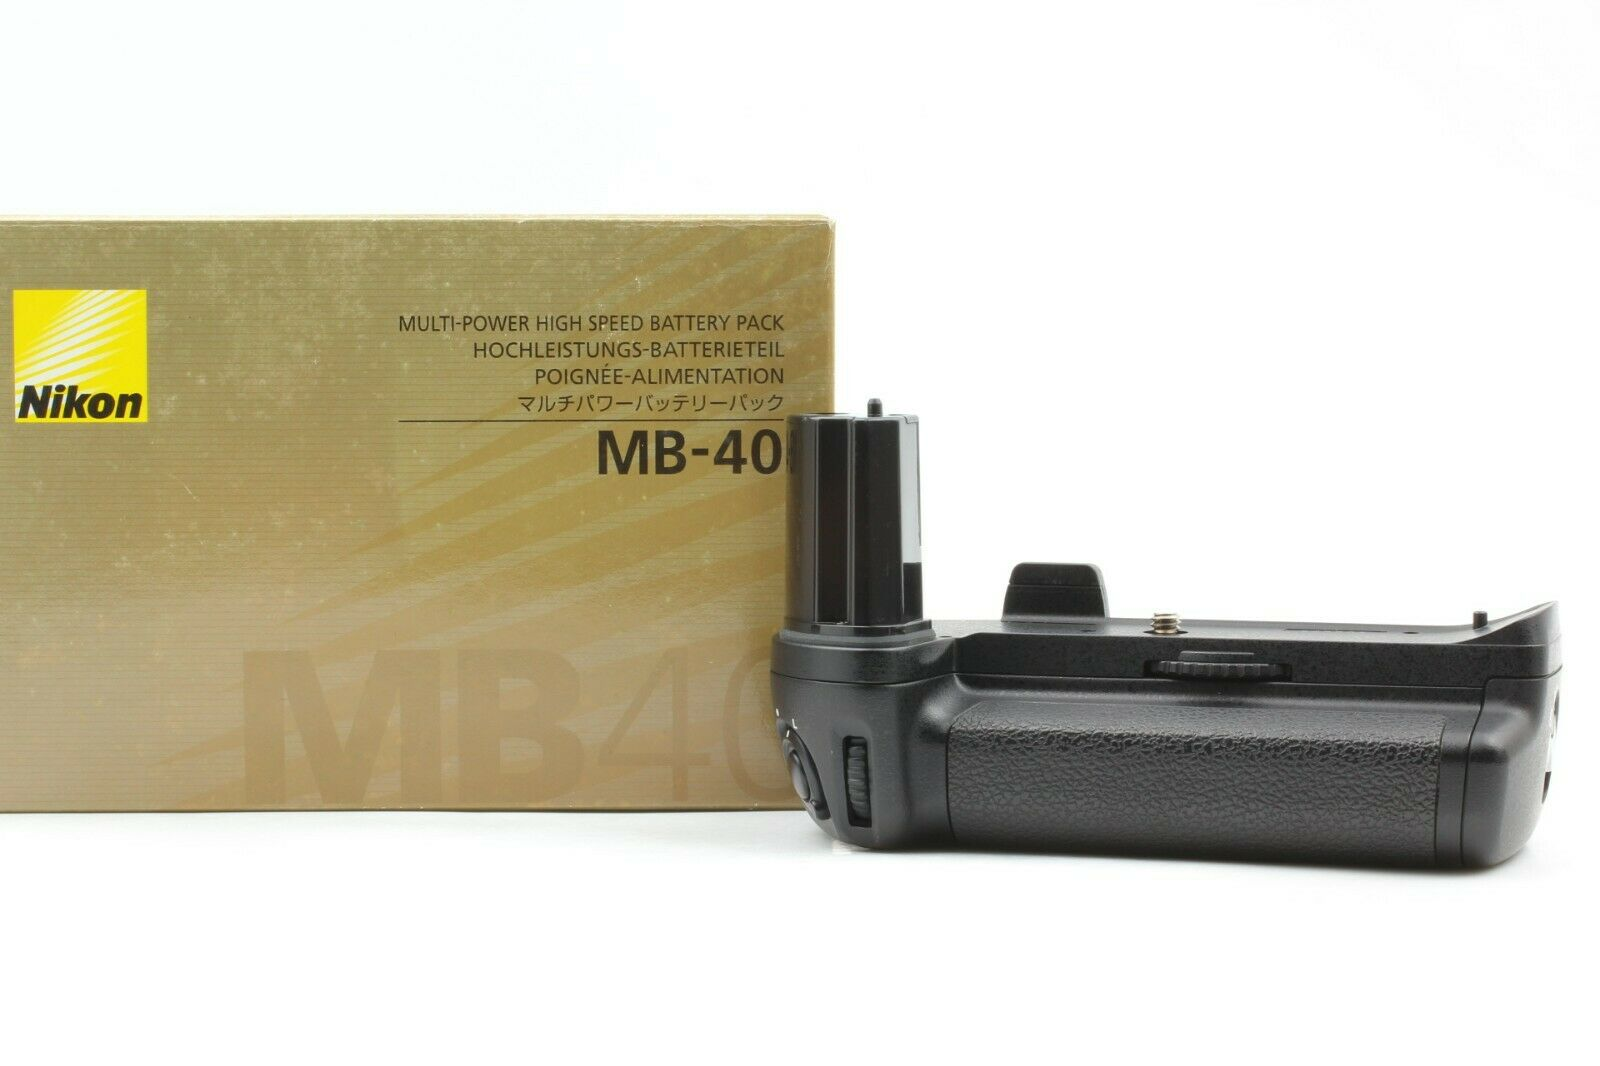 【Mint in Box】 Nikon MB-40 Battery Grip for Nikon F6 from Japan #571